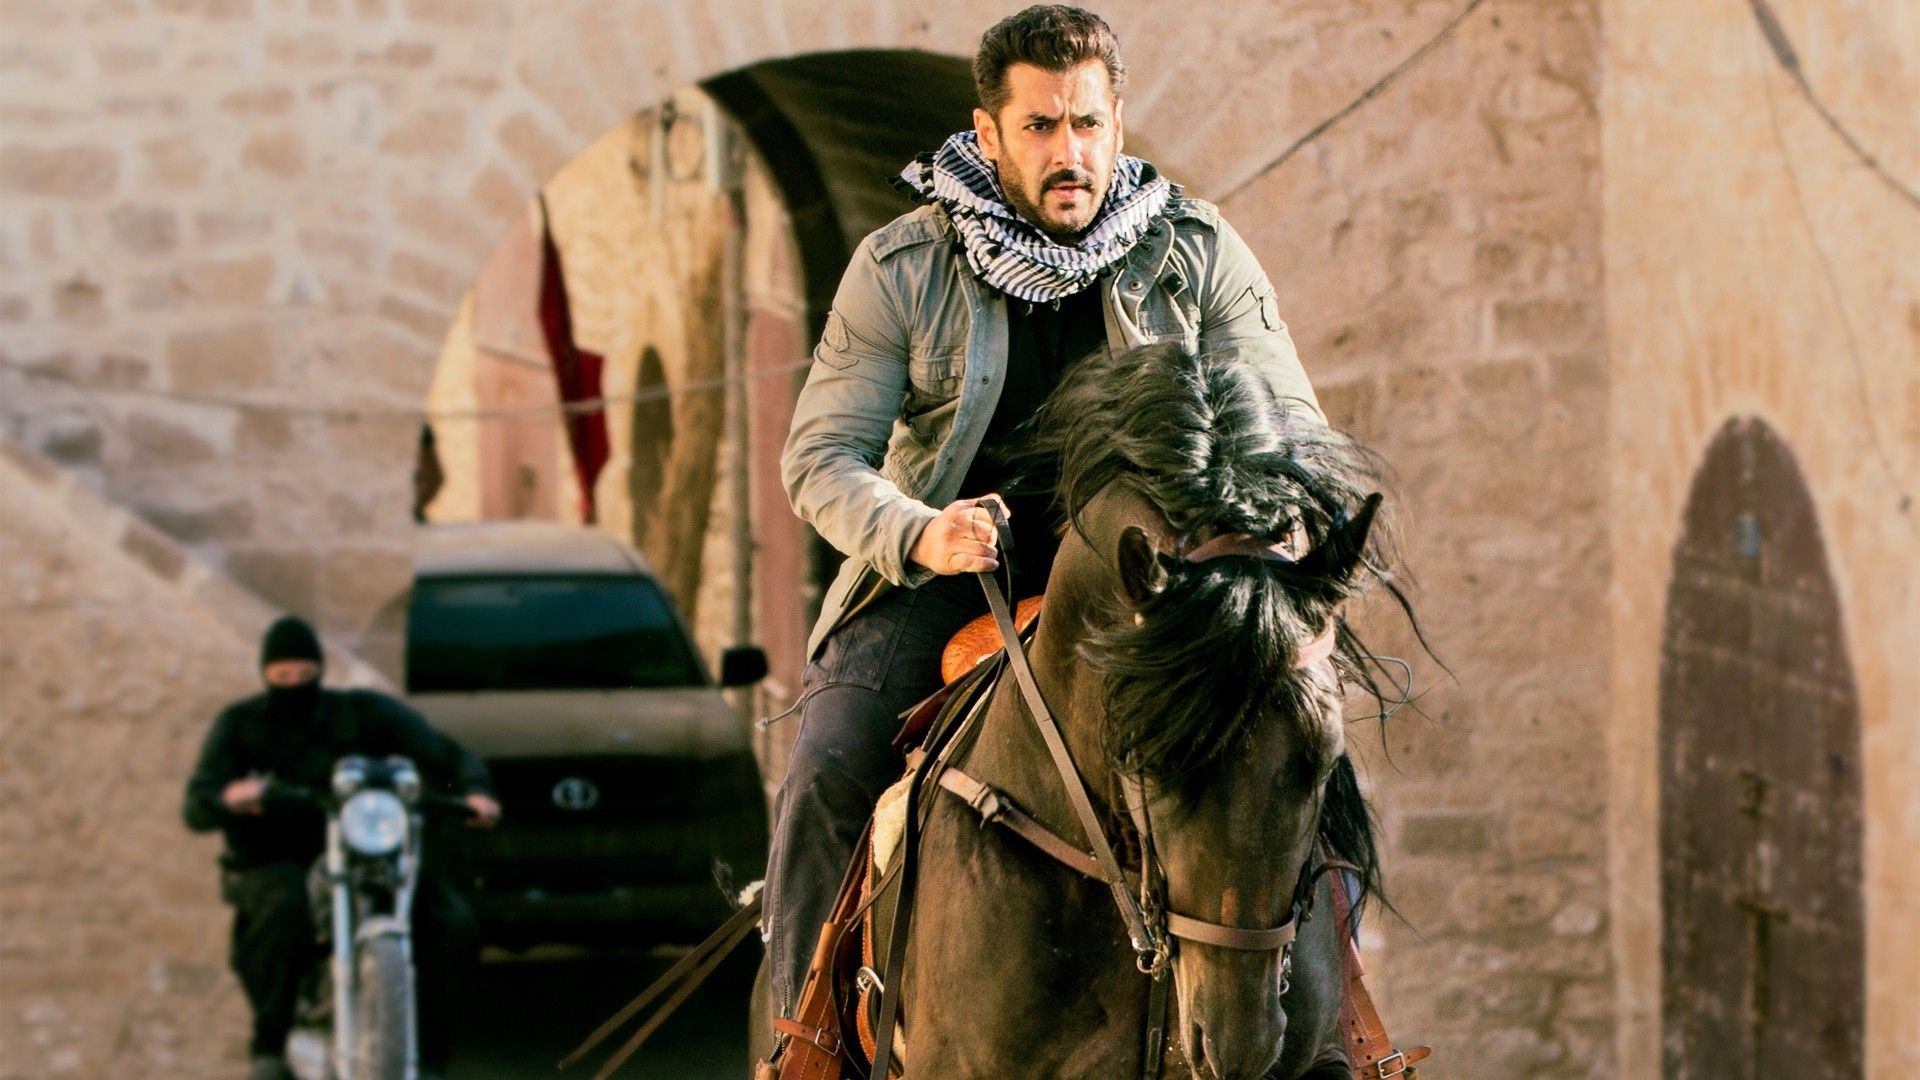 Expectedly, Salman Khan's  Tiger Zinda Hai  is smashing records all over the place